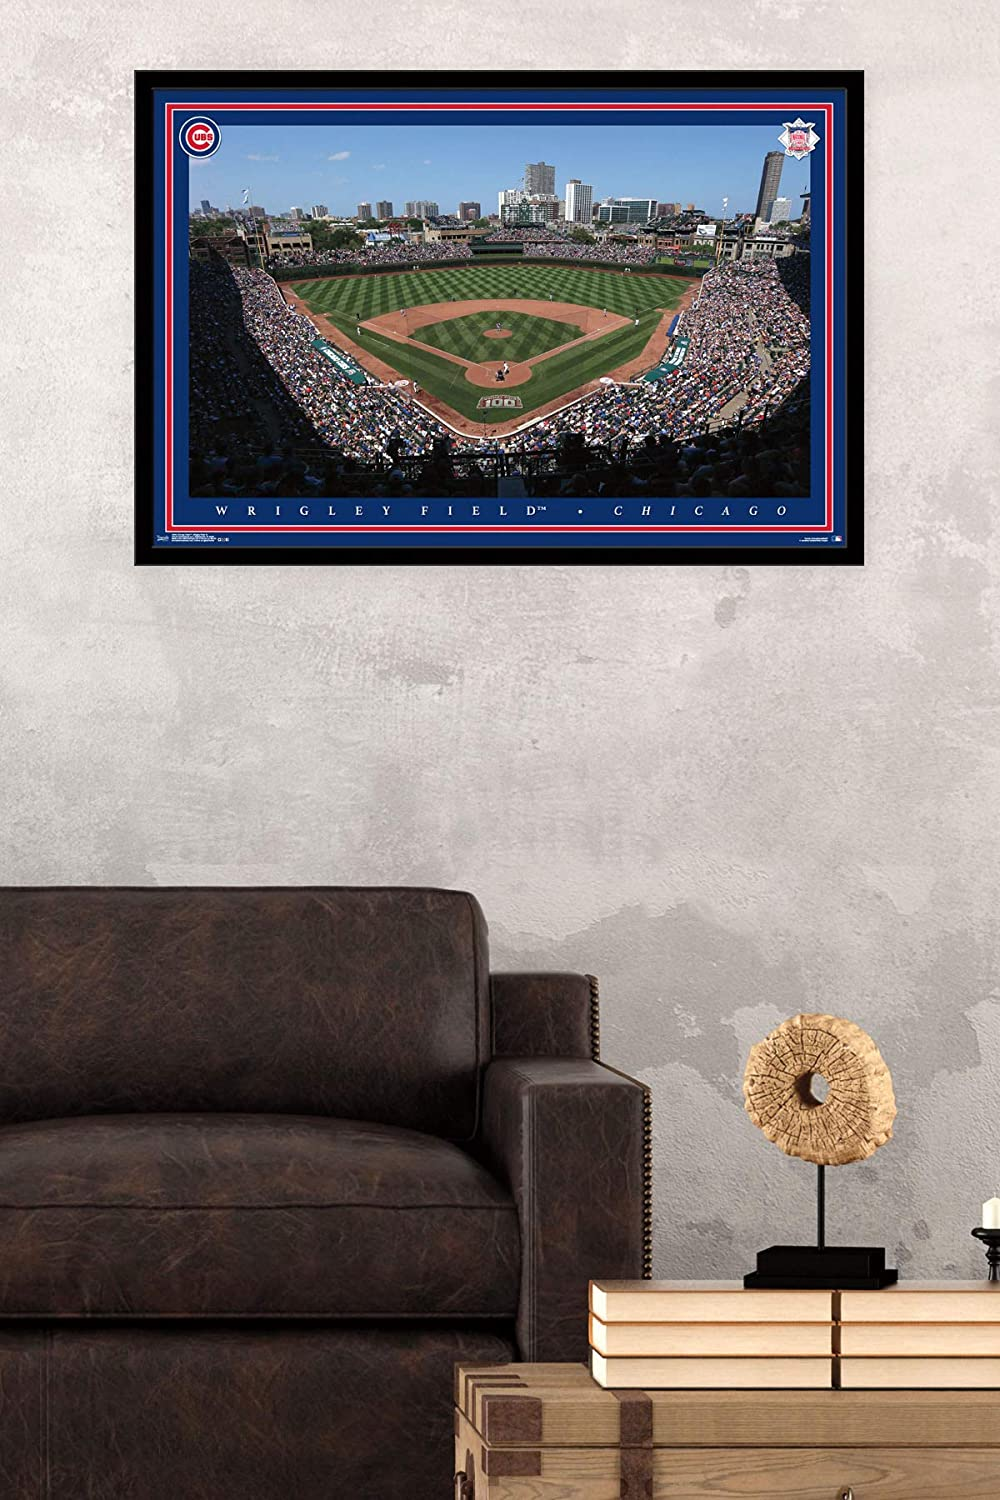 Trends International Chicago Cubs – Wrigley Field Wall Poster, 24.25 X 35.75 , Multi